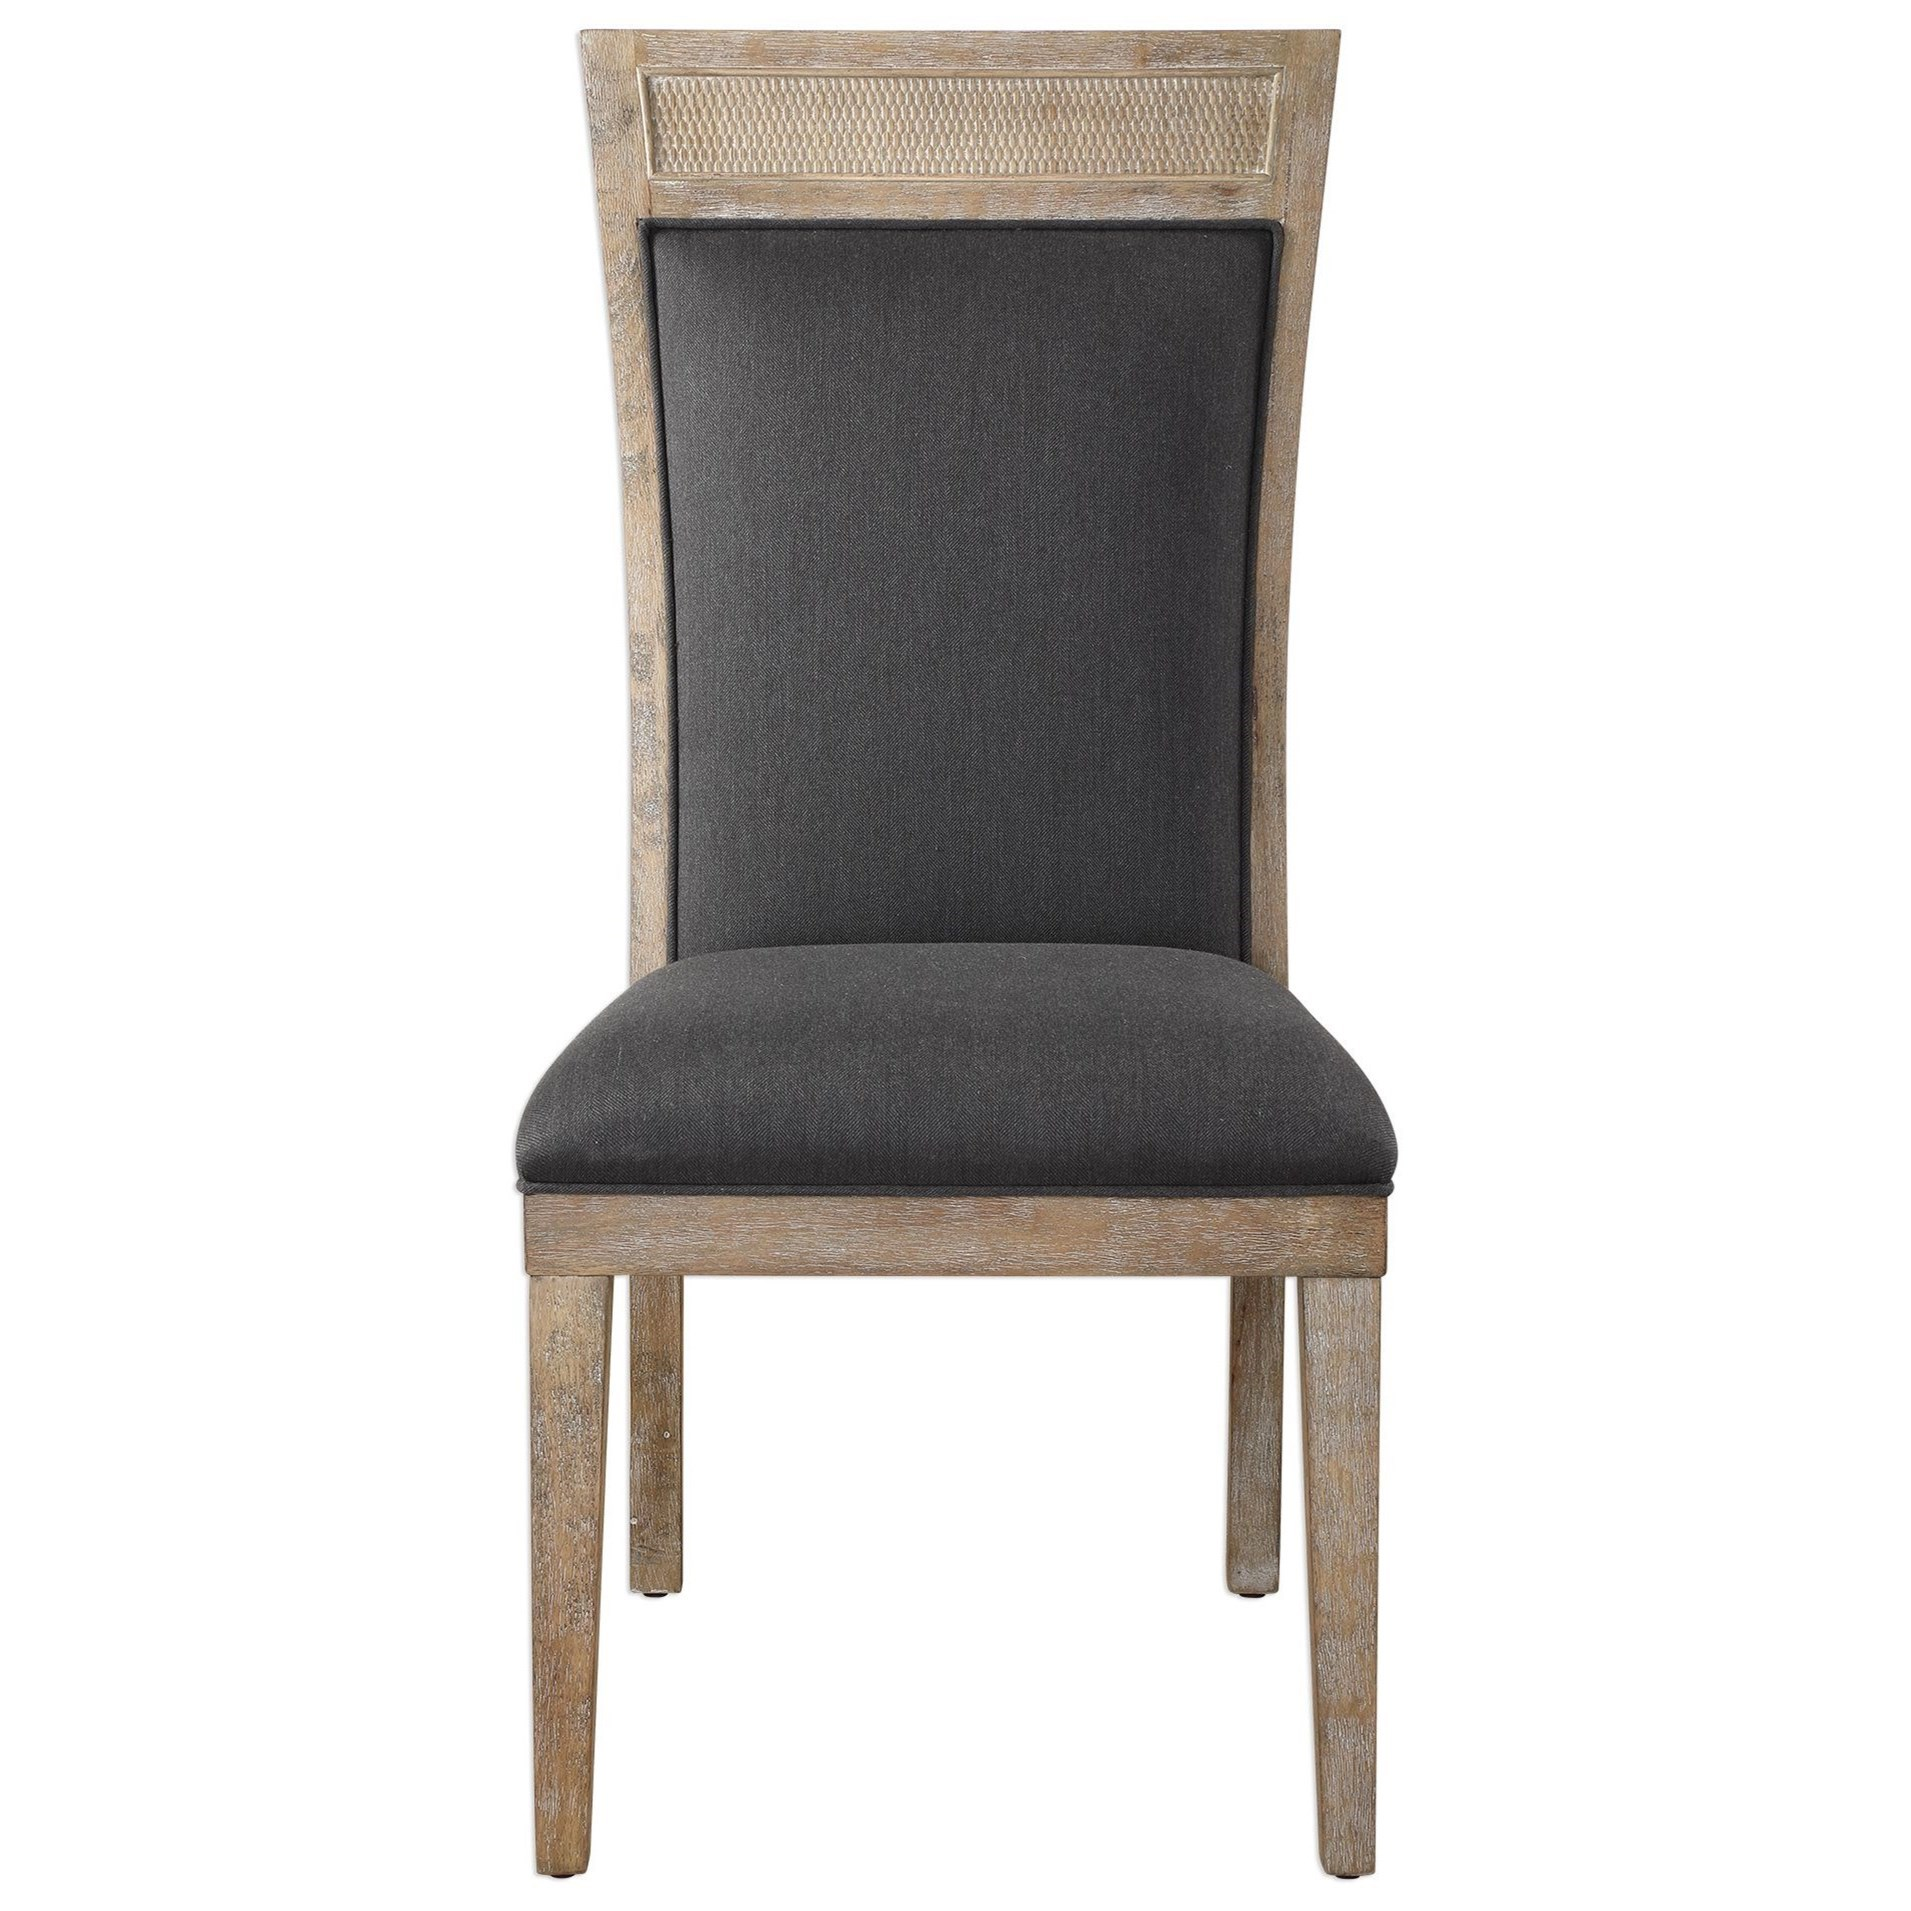 Accent Furniture - Accent Chairs Encore Dark Gray Armless Chair by Uttermost at Goffena Furniture & Mattress Center